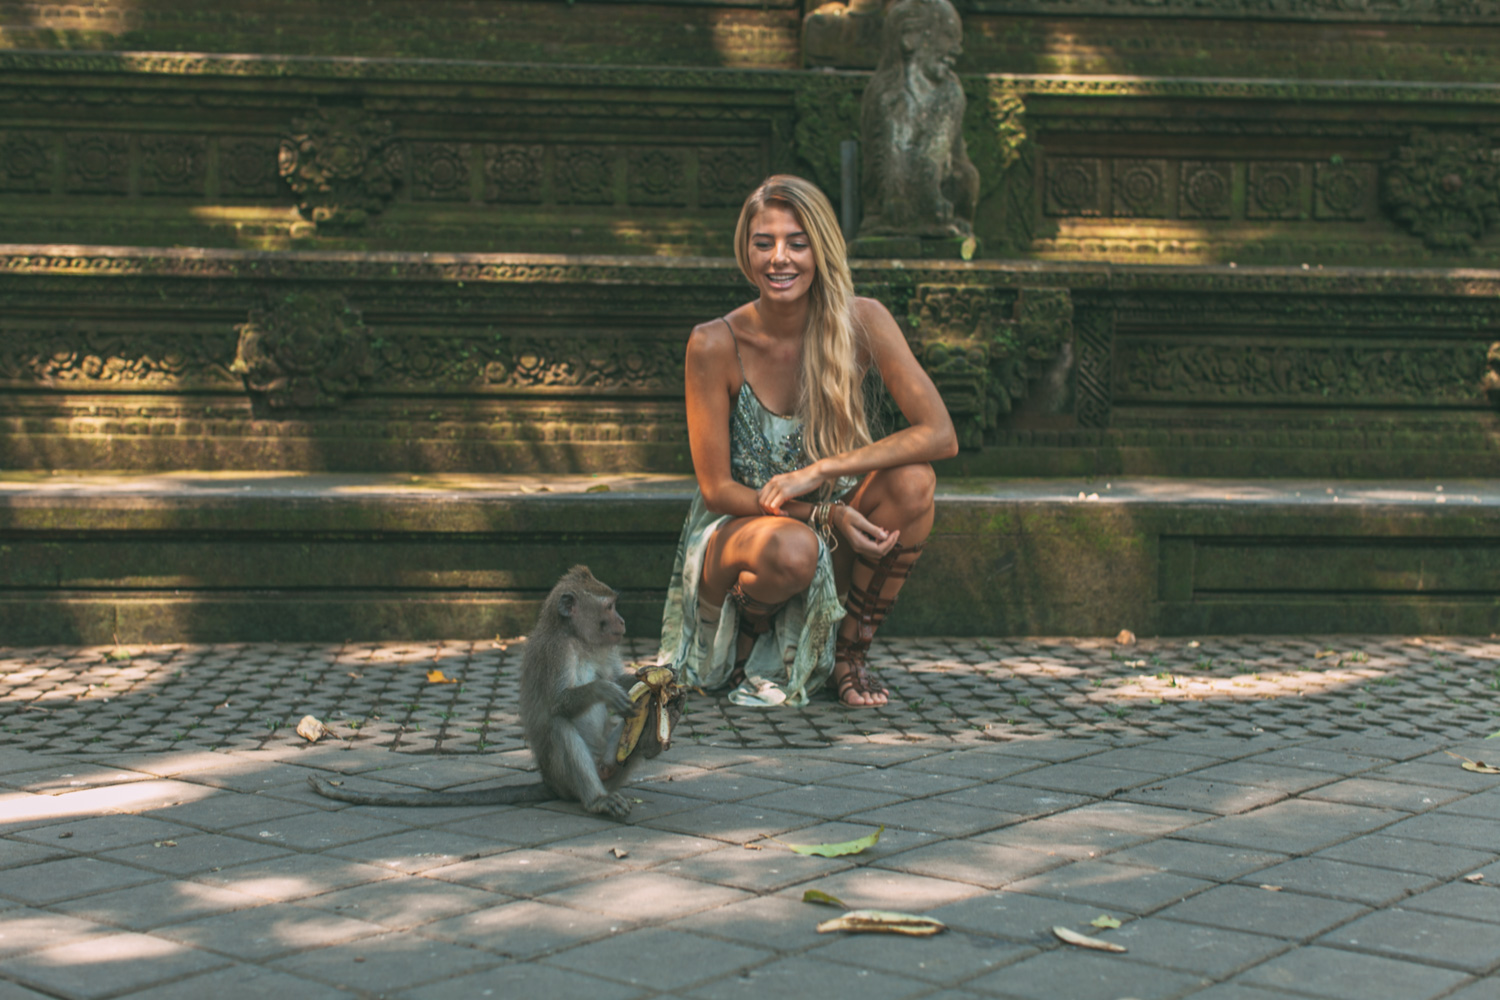 Ubud Monkey Forest (8 of 12)